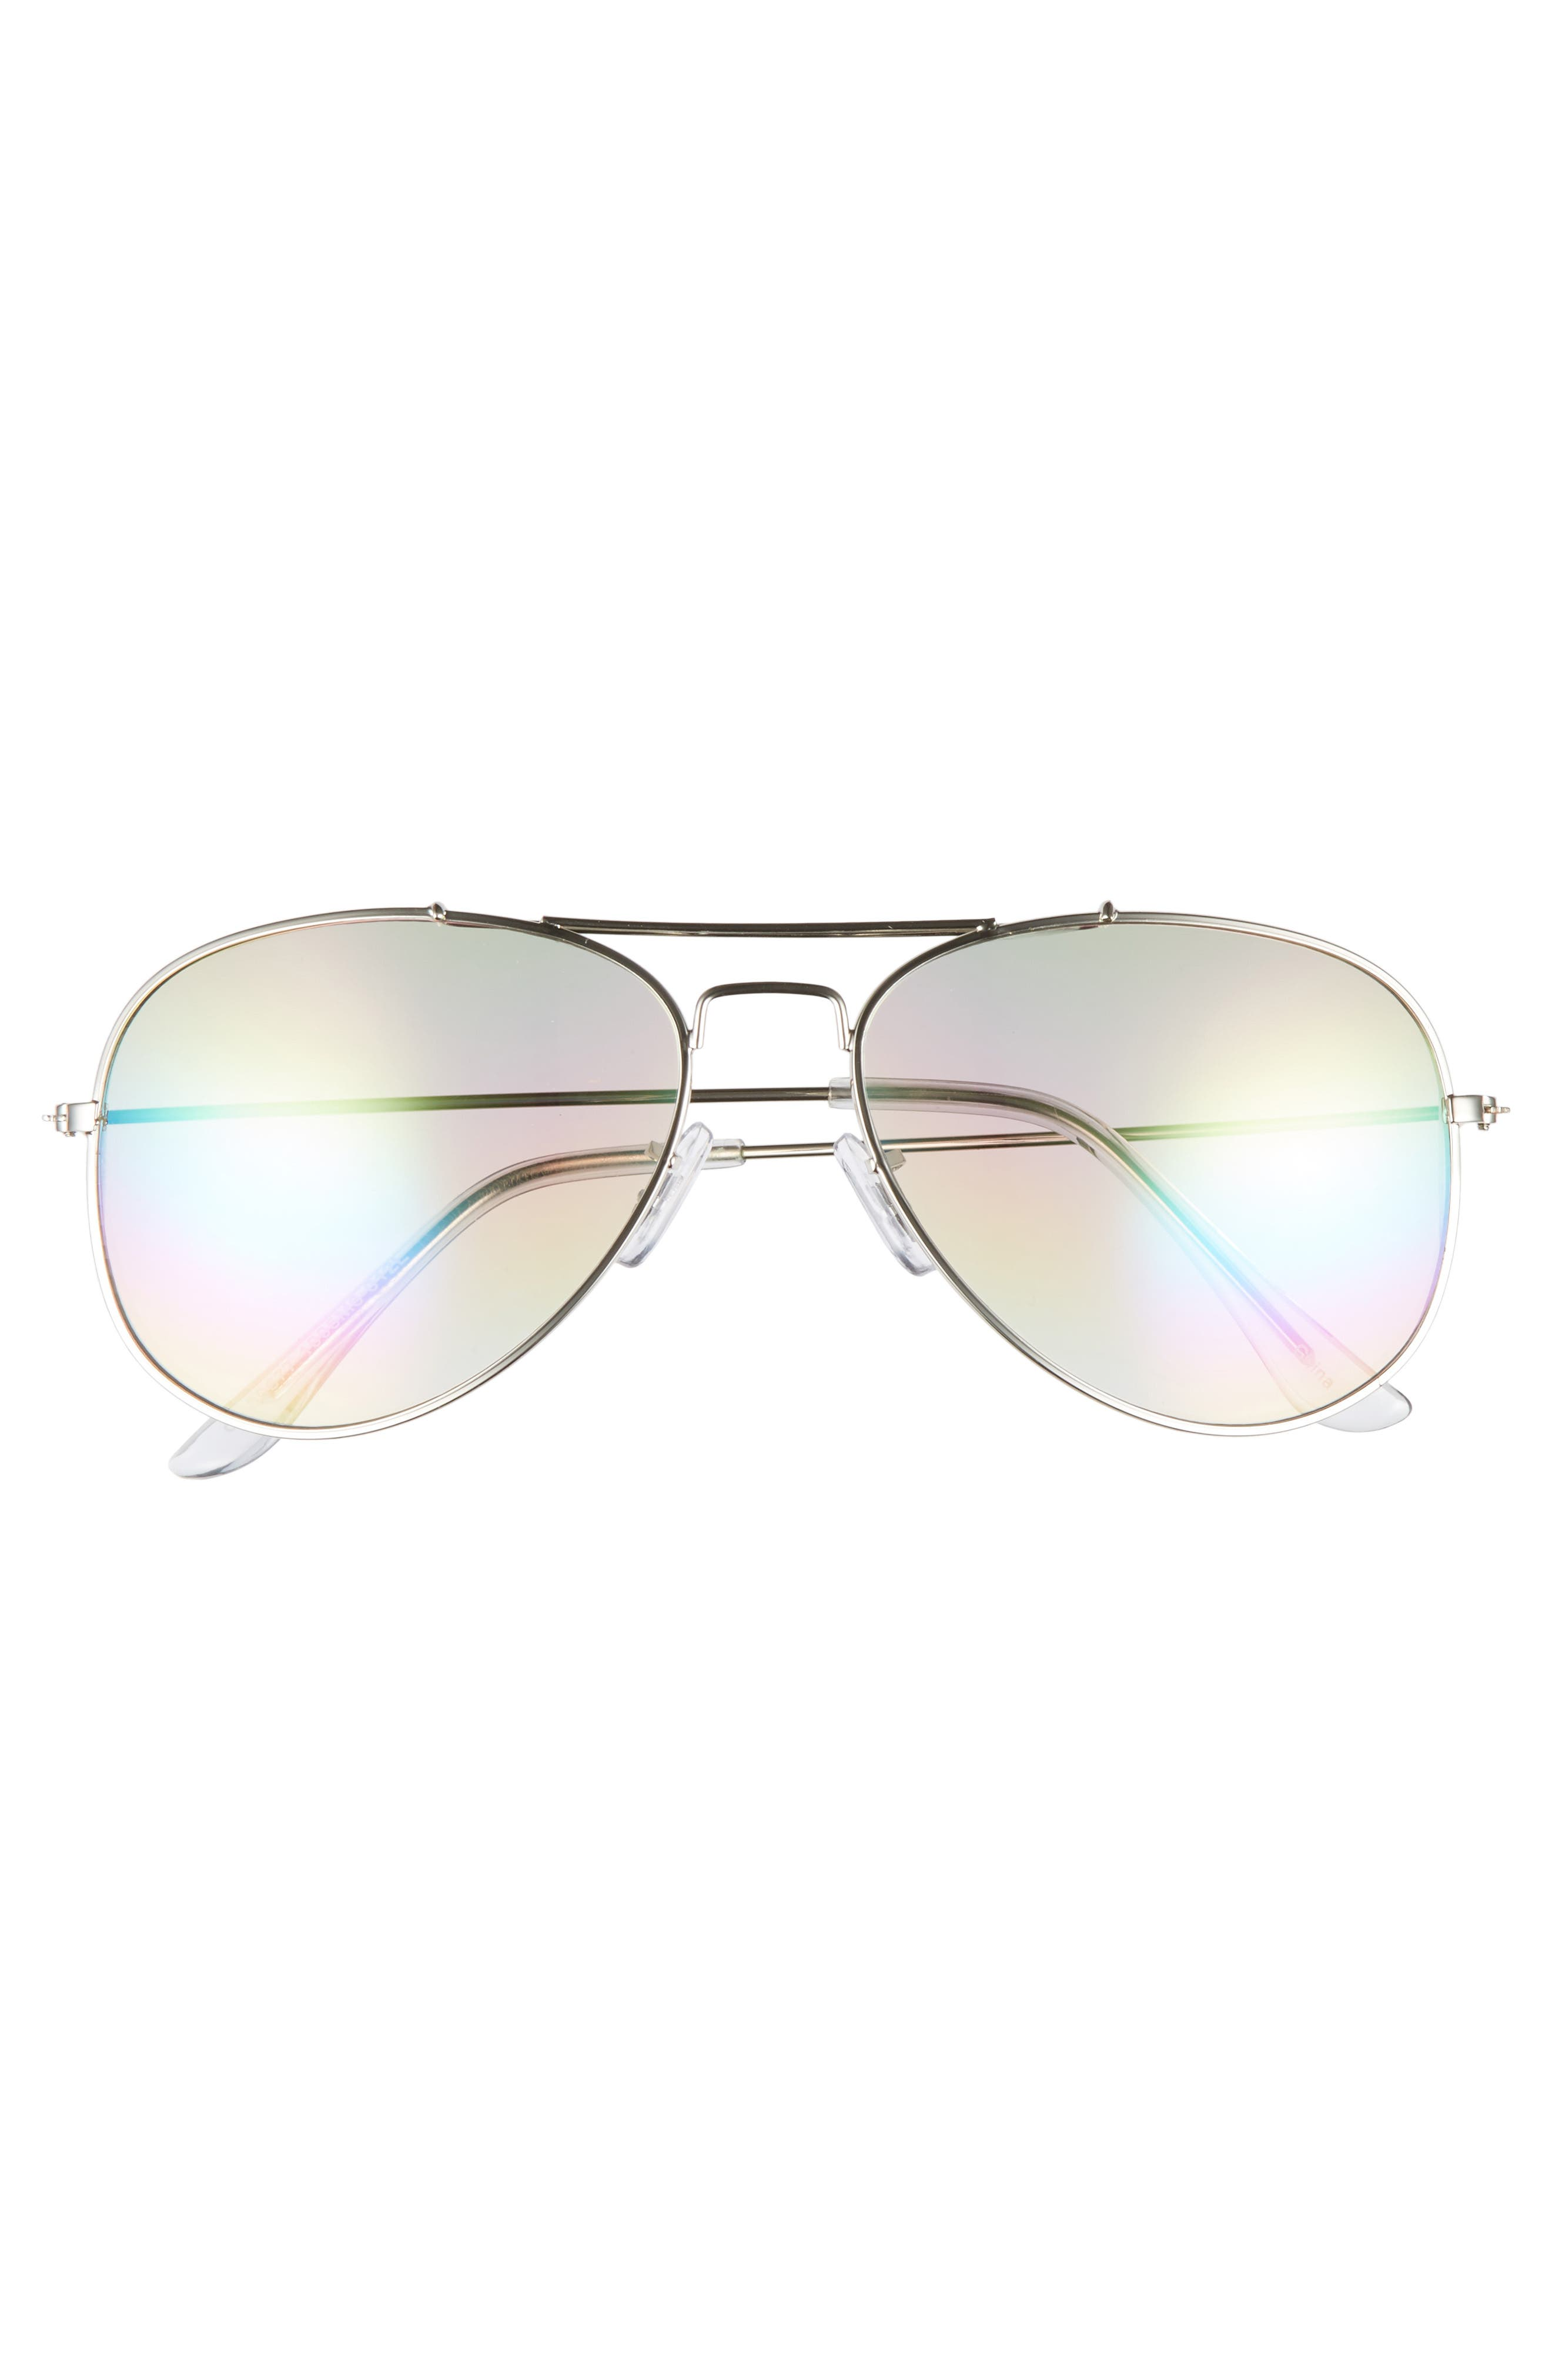 Rainbow Aviator Sunglasses,                             Alternate thumbnail 3, color,                             Silver/ Multi